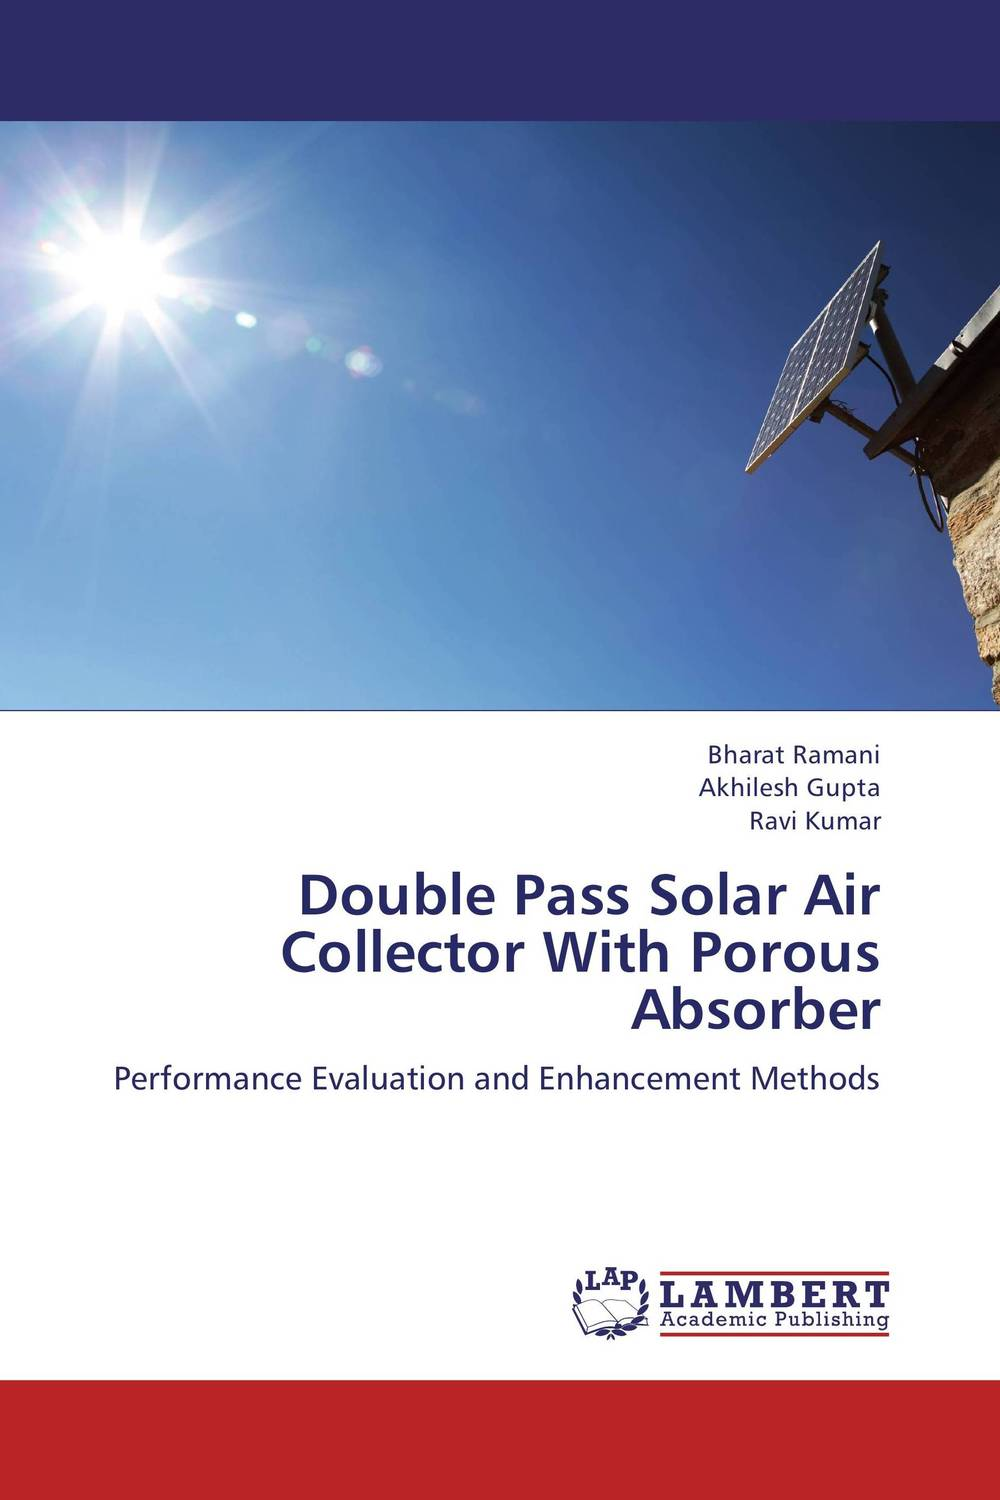 Double Pass Solar Air Collector With Porous Absorber 12v 24v 40a mppt pwm solar regulator with lcd display usb intelligent streetlight three time solar charge controller y solar